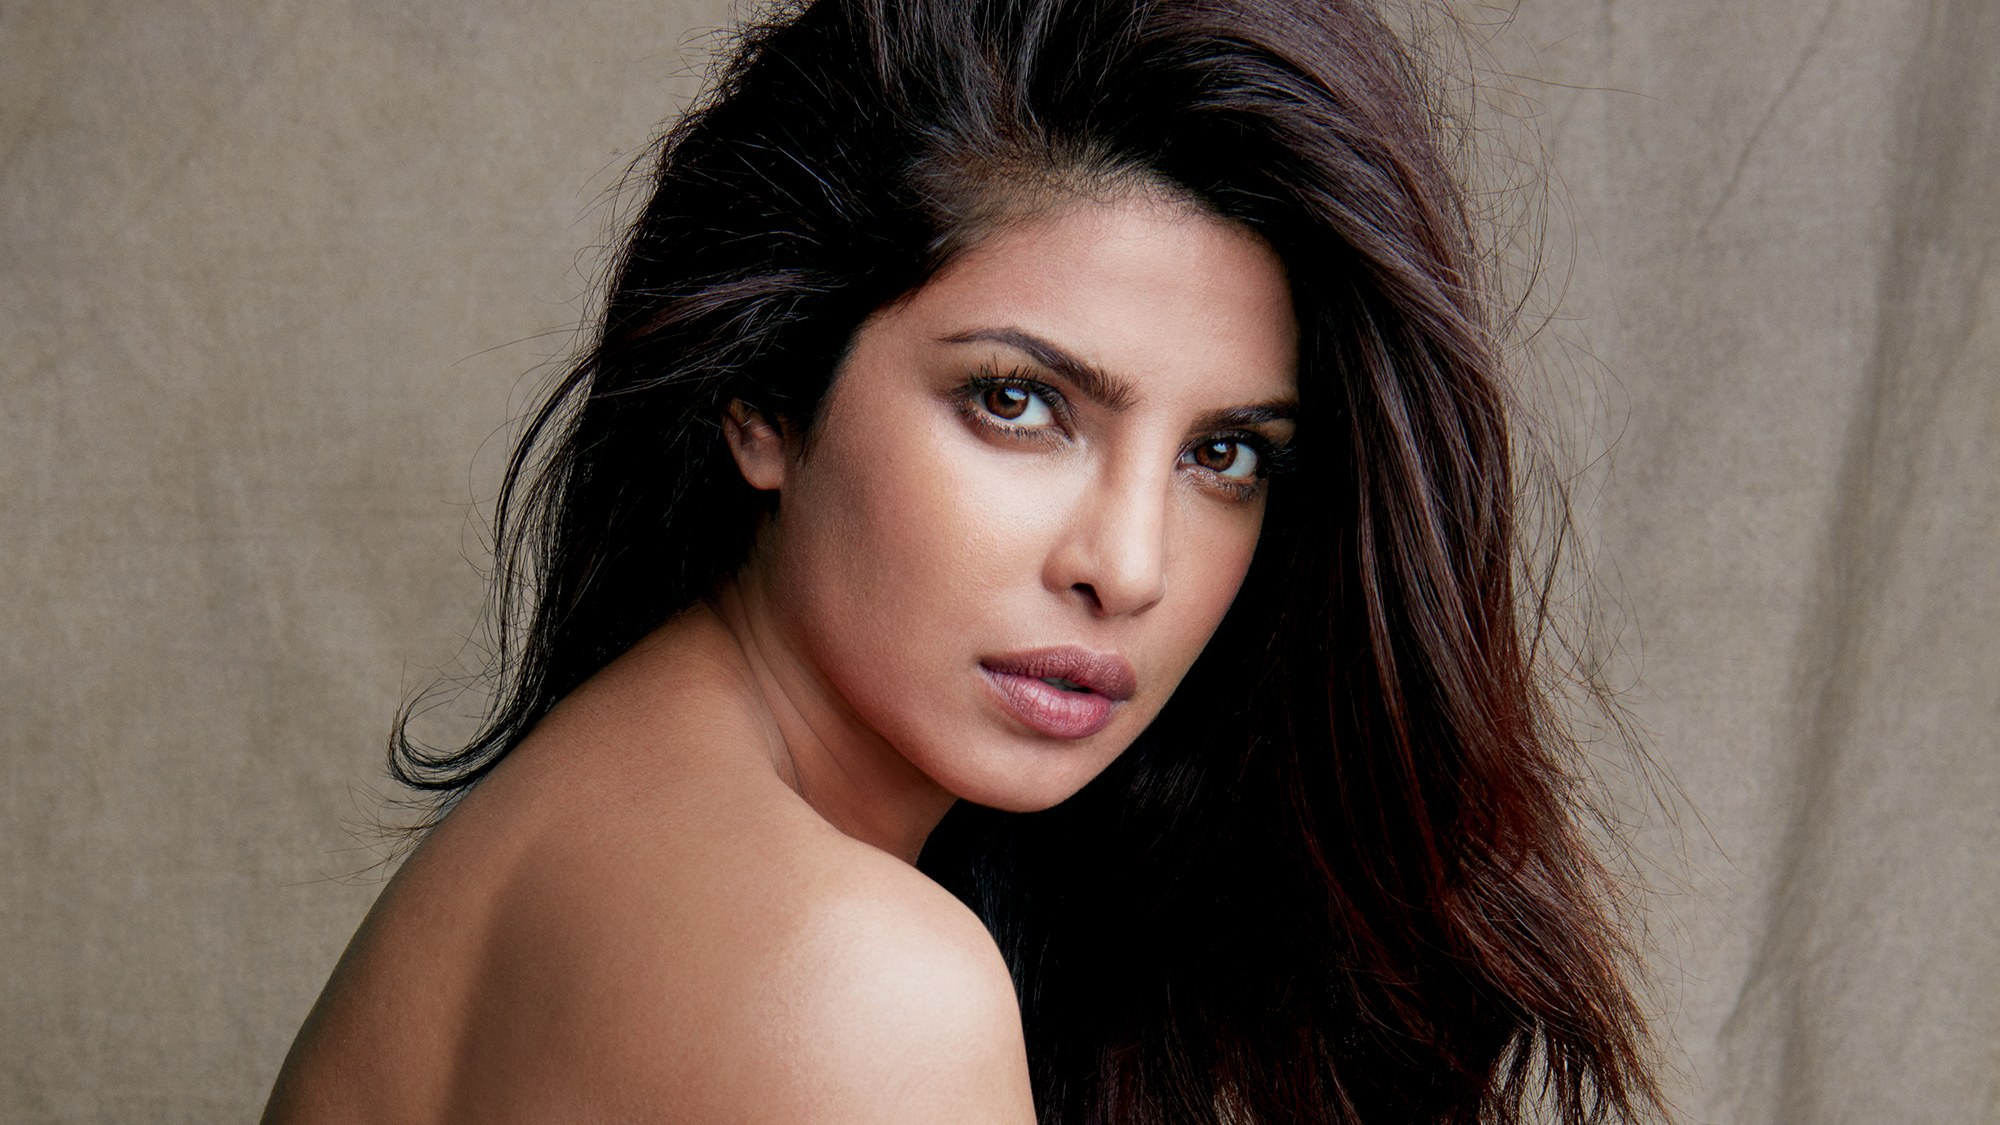 Priyanka Chopra Wallpapers Images Photos Pictures Backgrounds